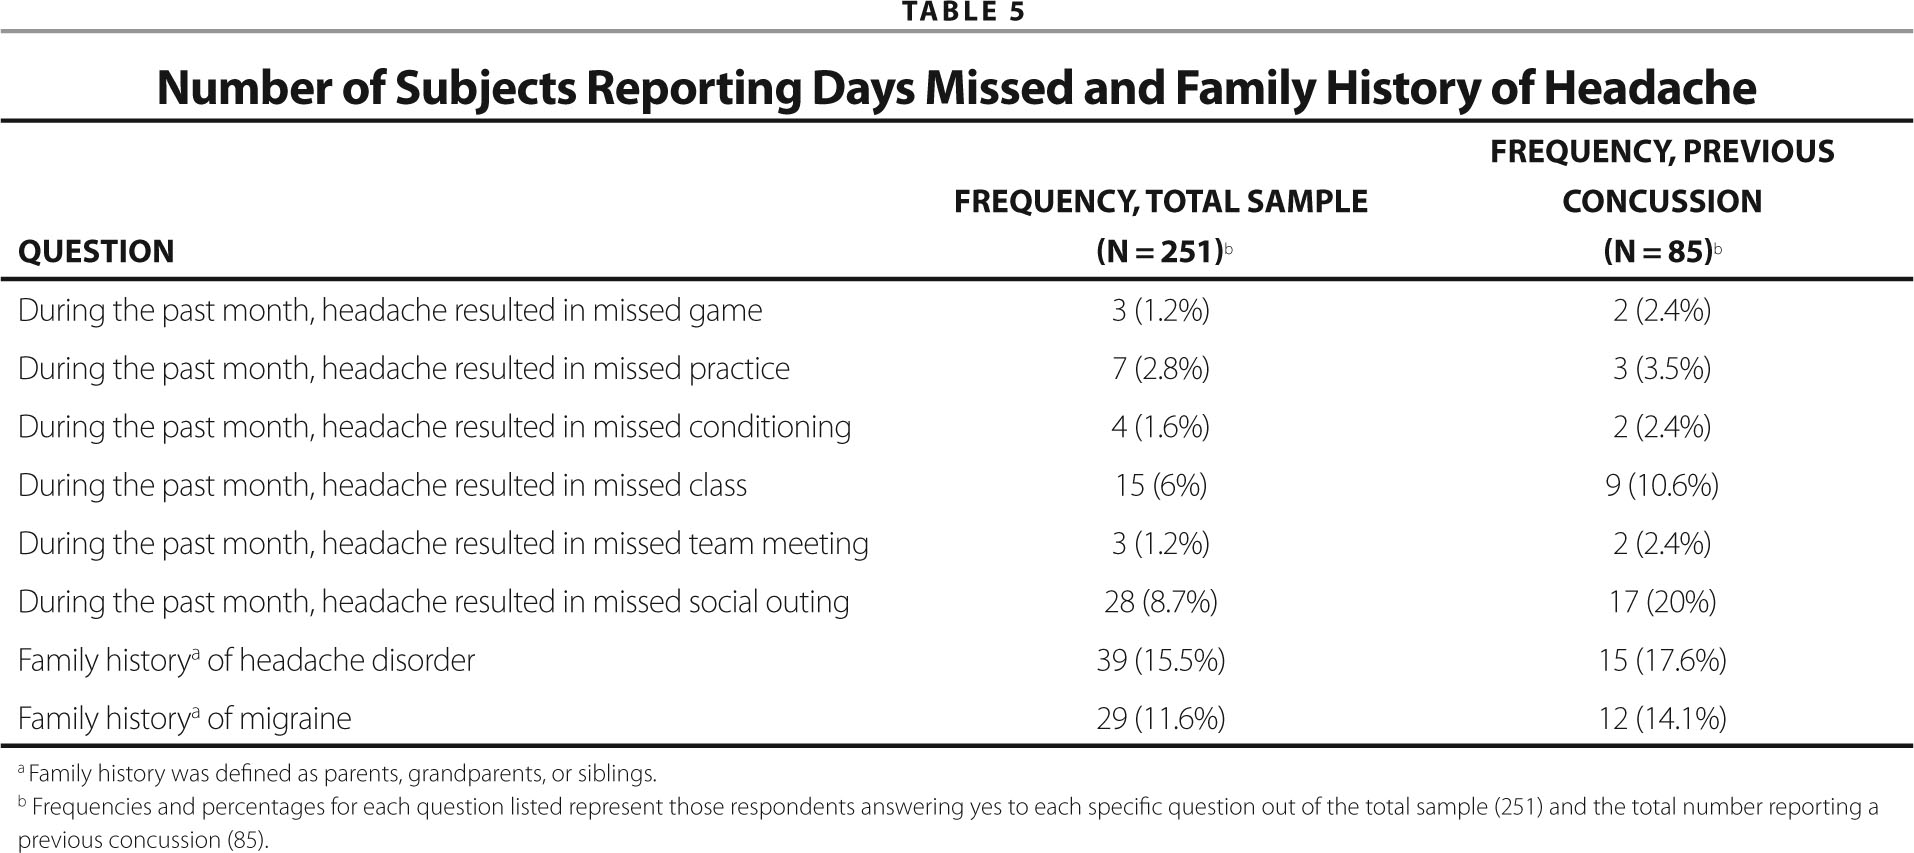 Number of Subjects Reporting Days Missed and Family History of Headache